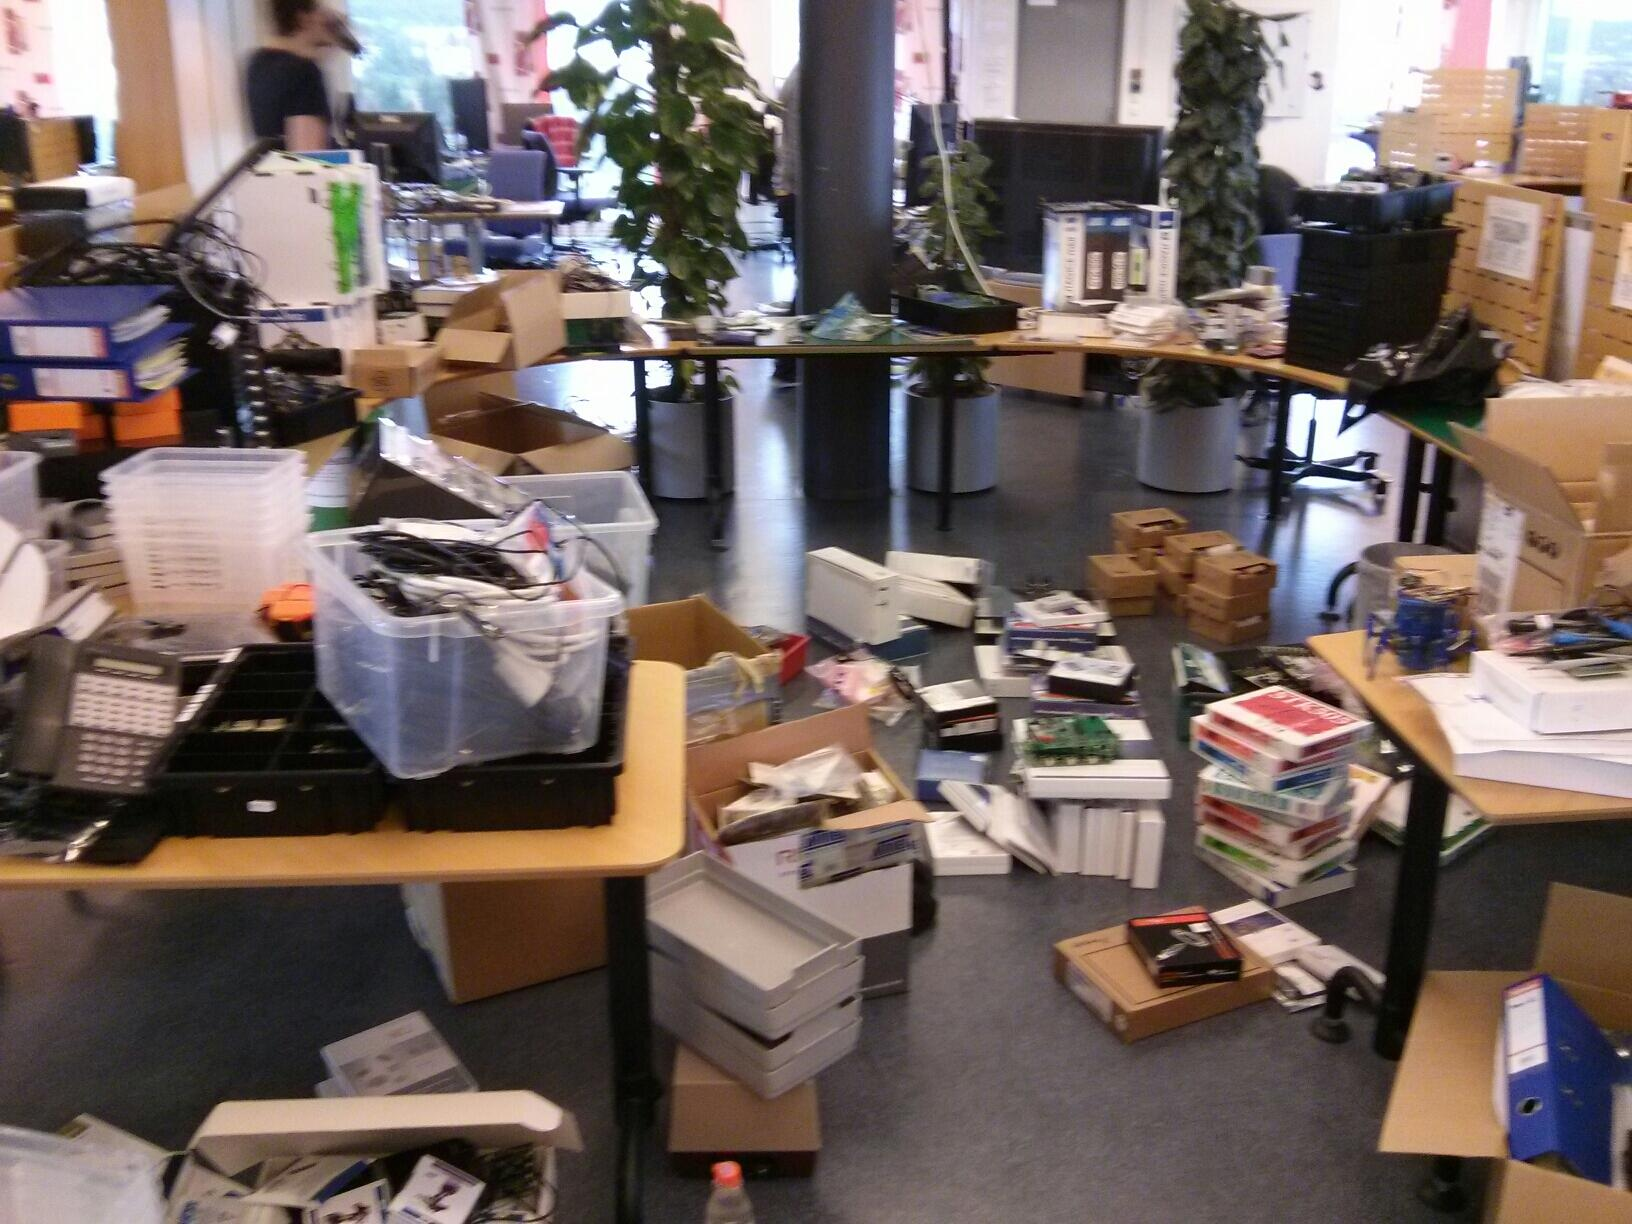 Cleaning out the Atmel office.